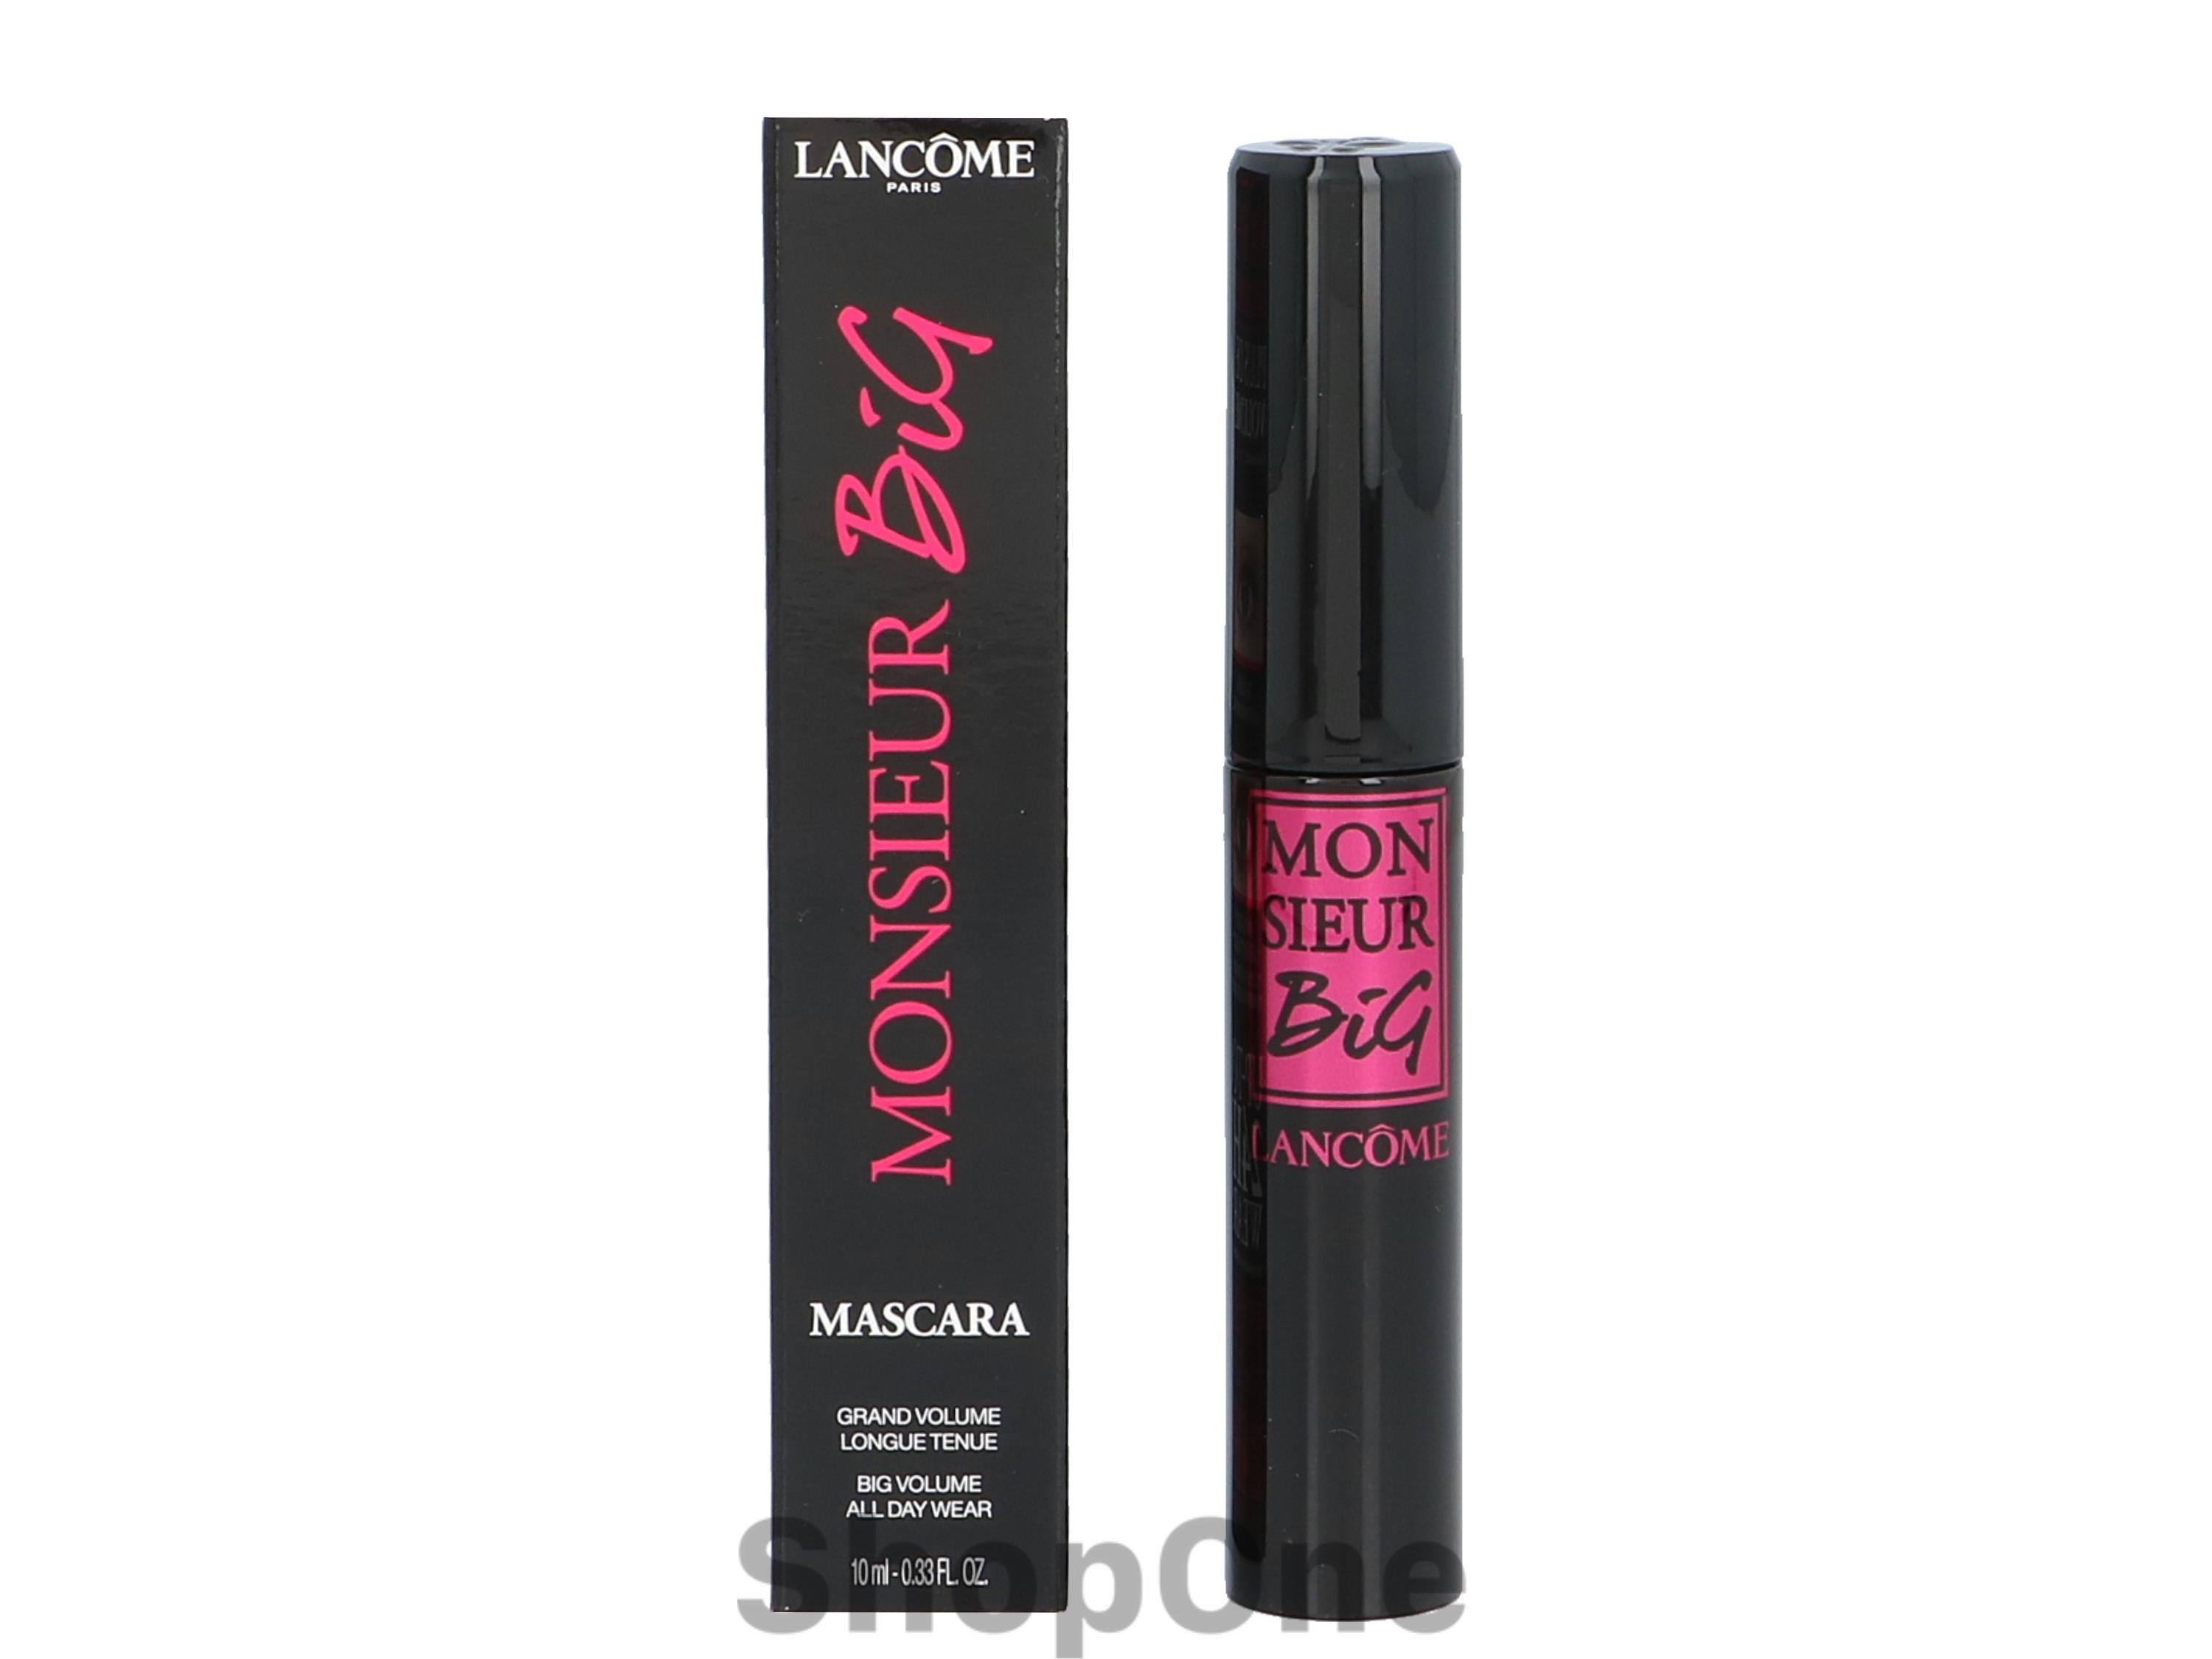 Image of   Monsieur Big Mascara 1 stuk fra Lancome